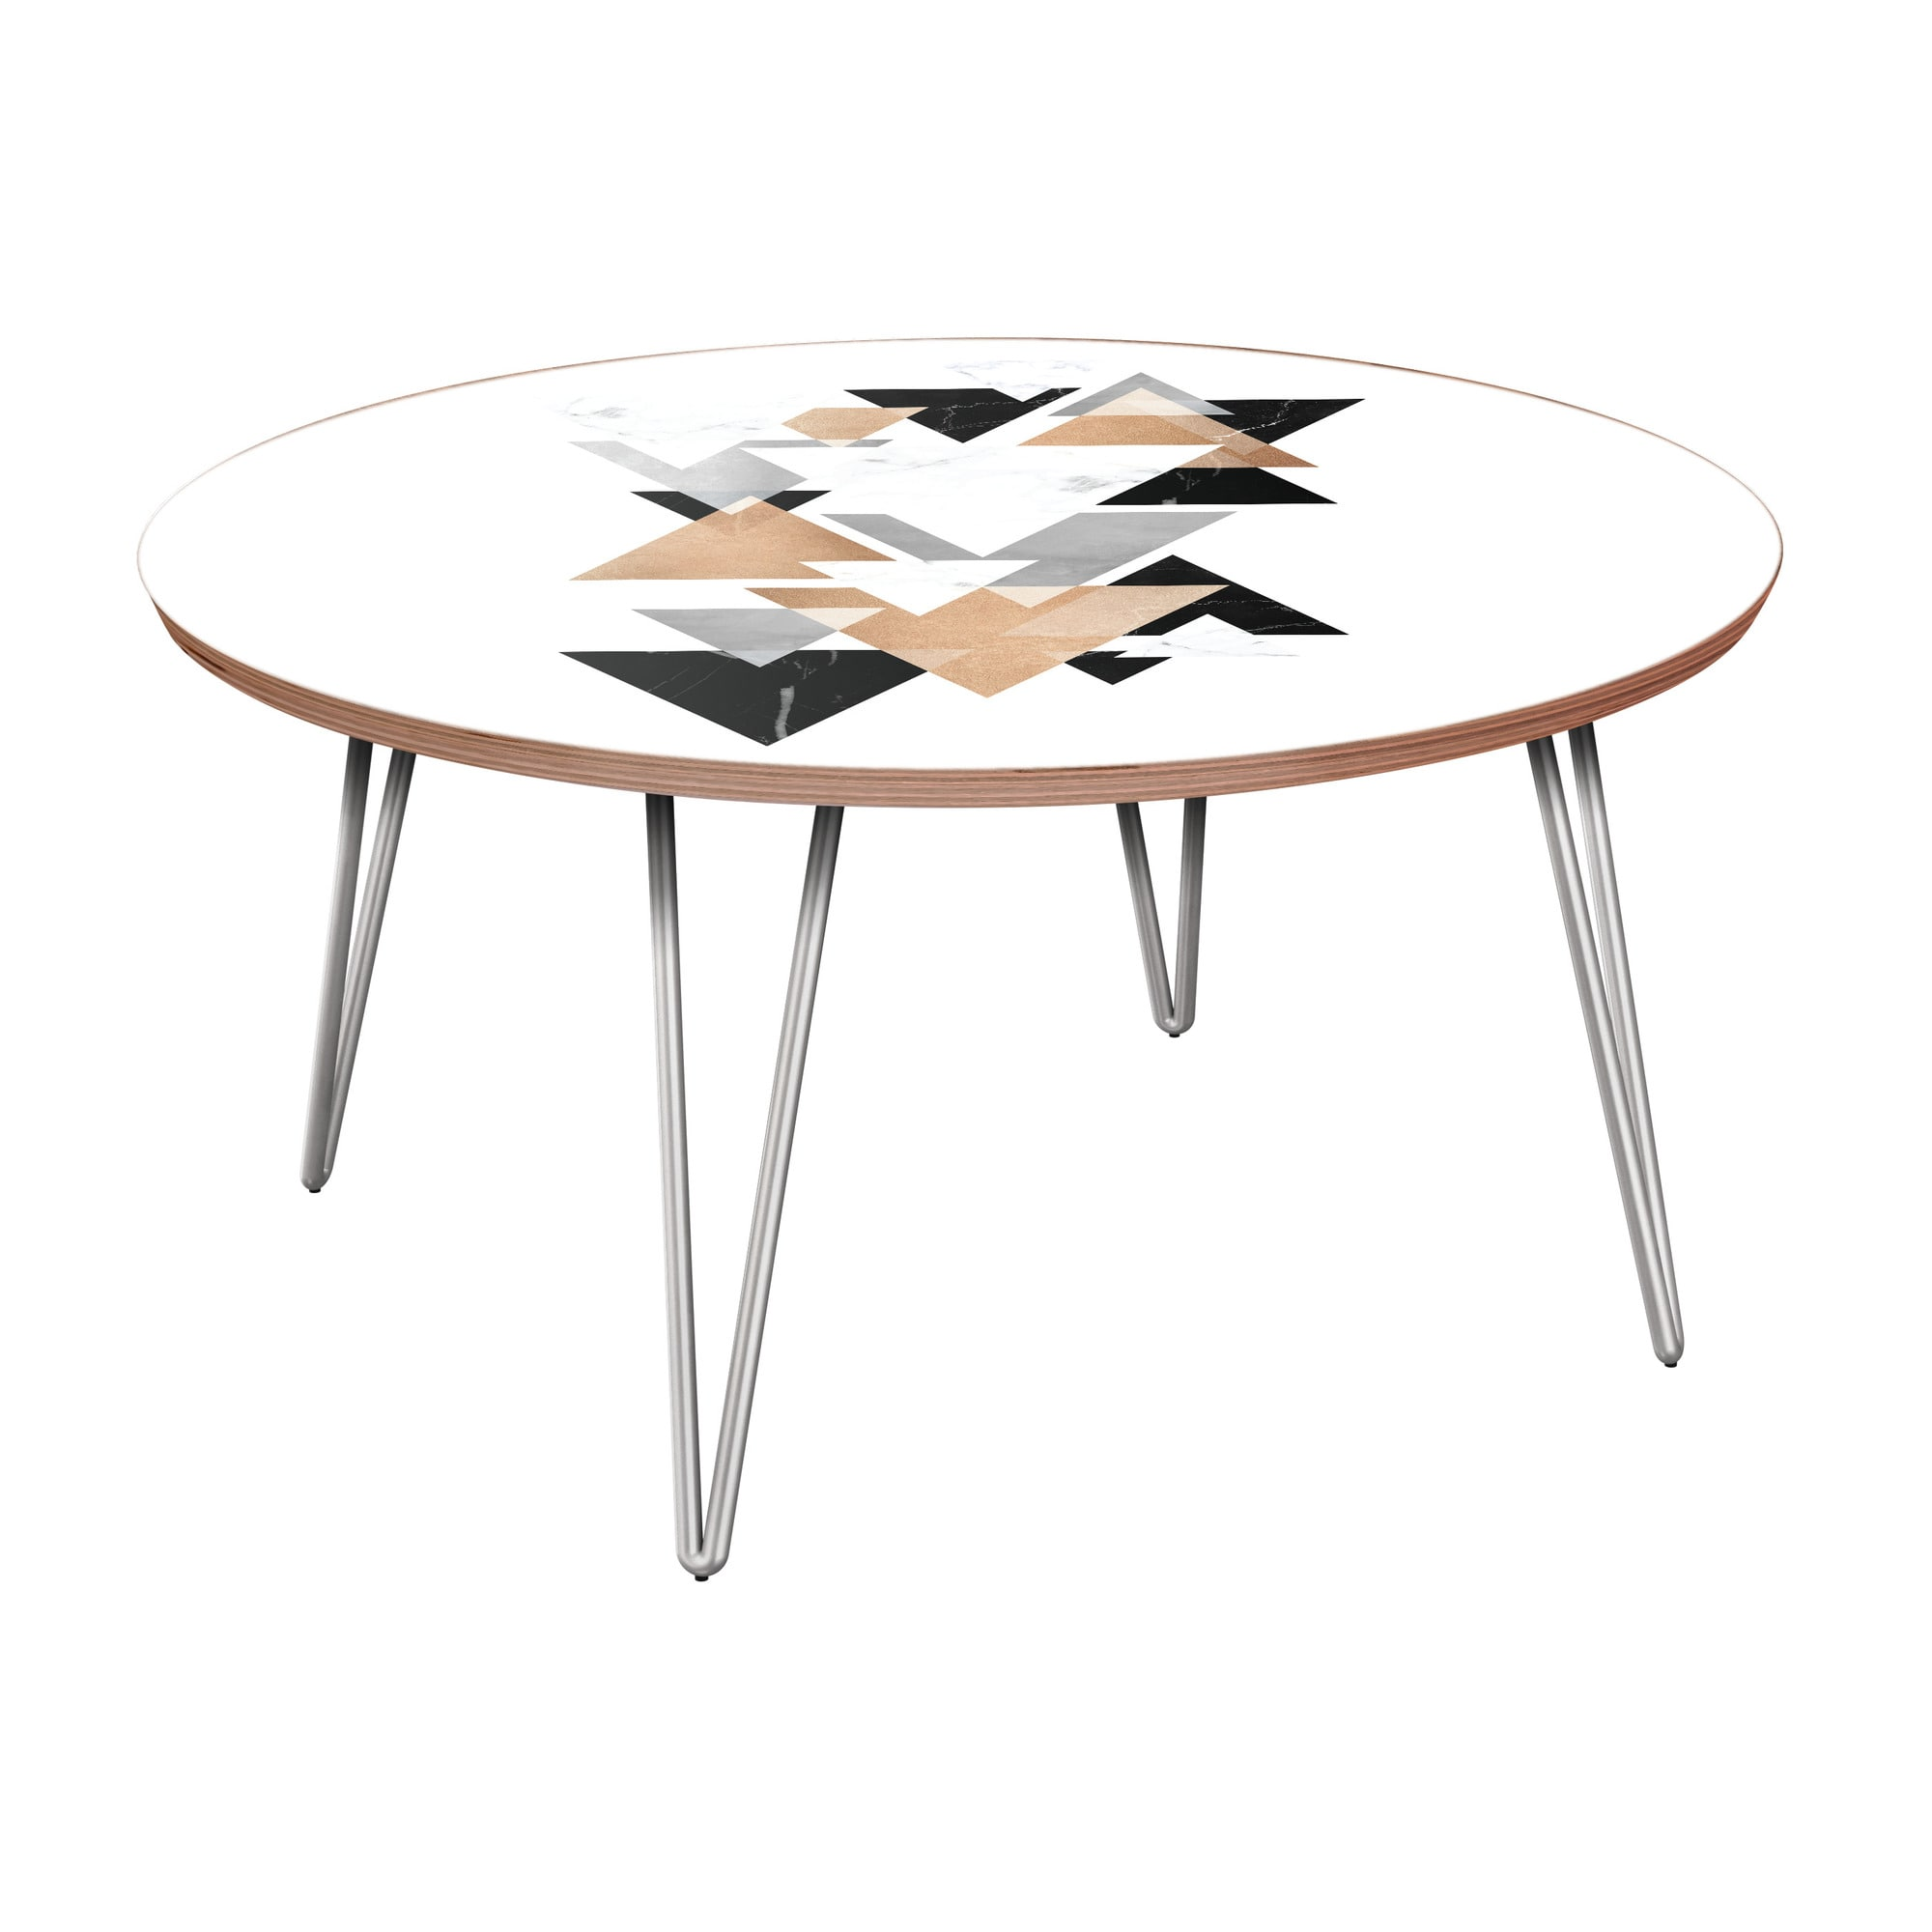 nye koncept stella marble gold walnut hairpin coffee table with nyk room essentials accent chrome base thin cabinet rustic nest tables square toronto vanity foldable wicker brown